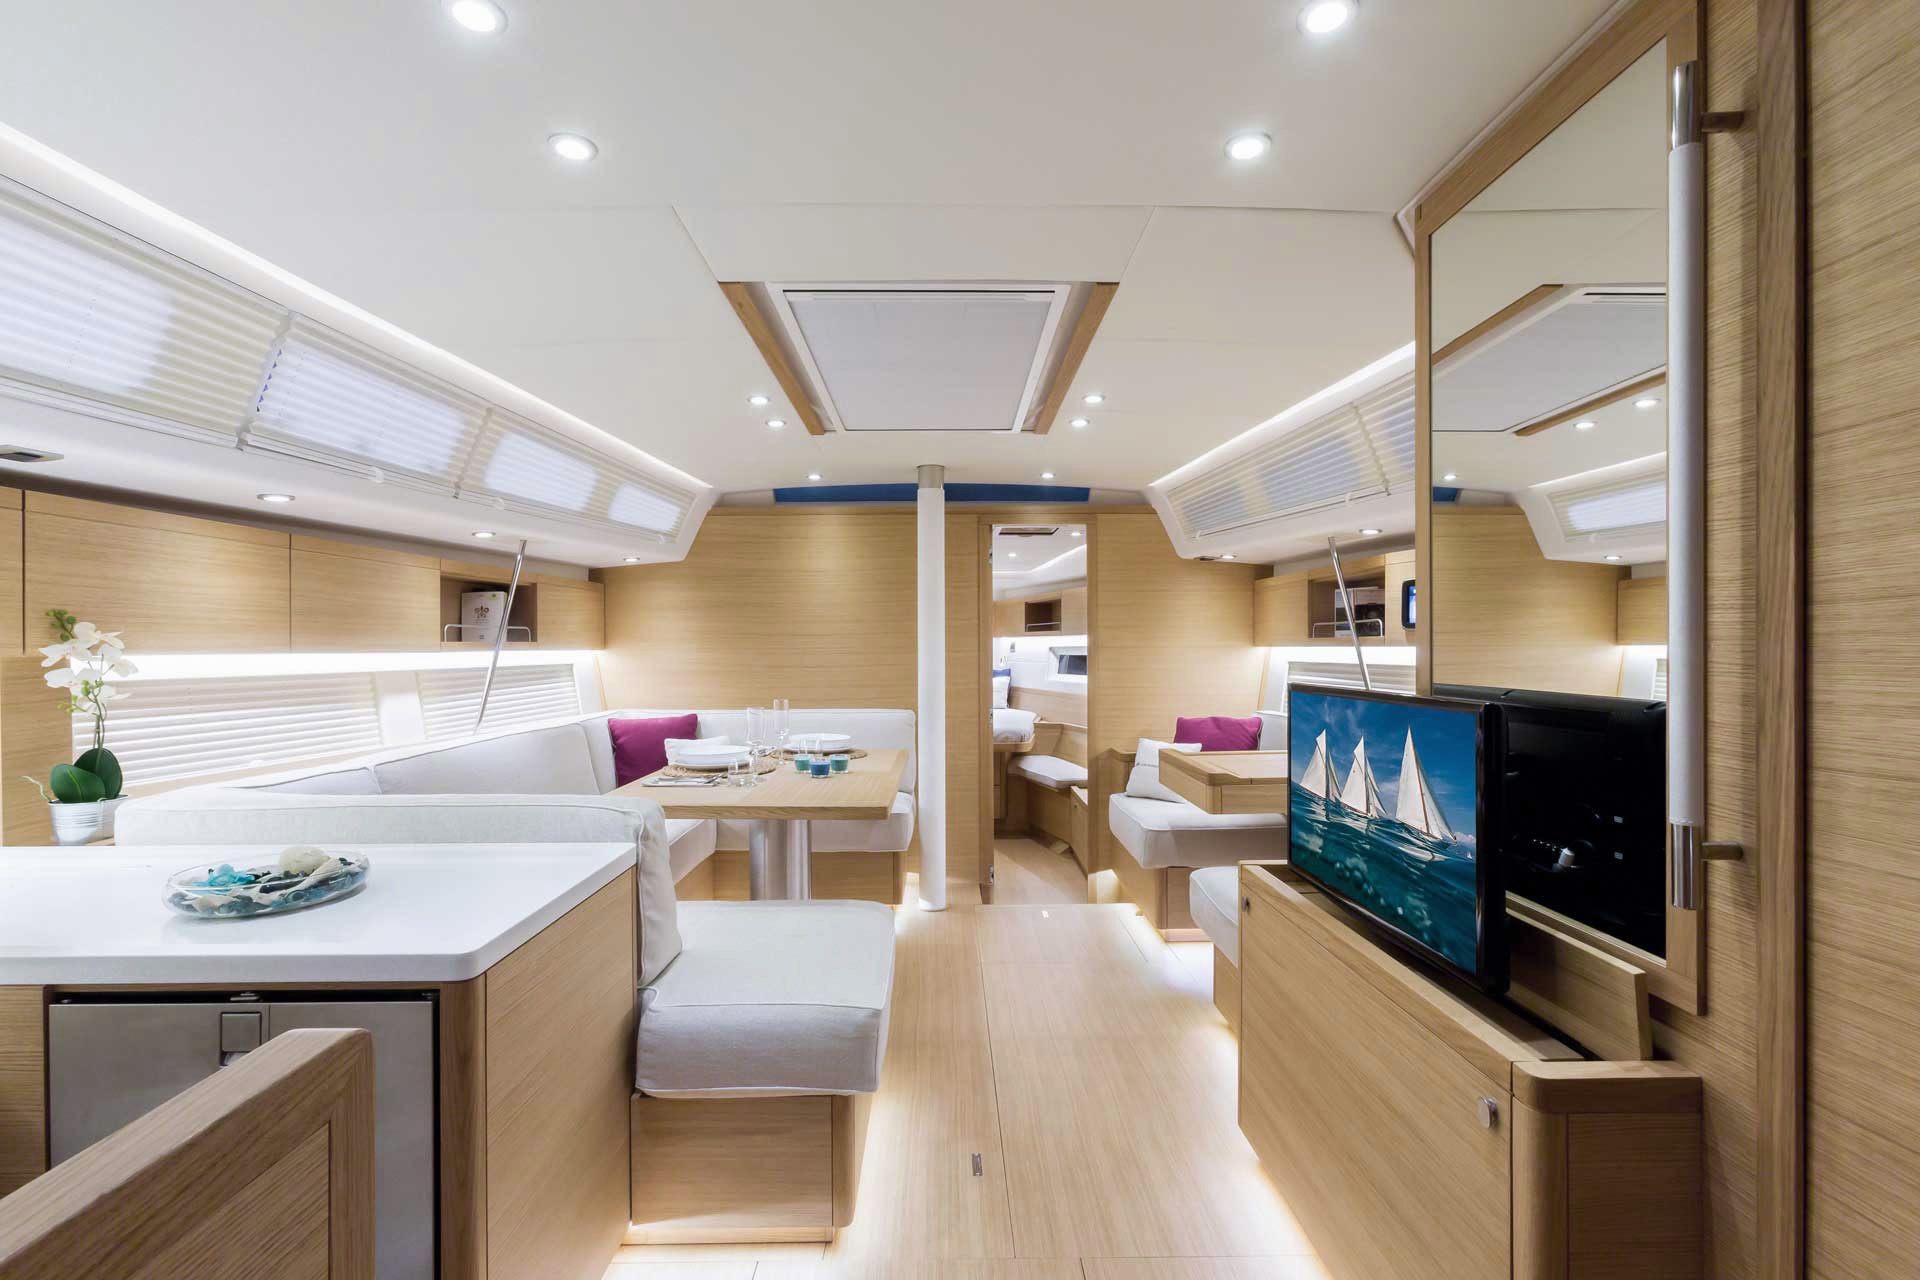 Grand_Soleil-Long_Cruise_46-California_Yacht_Imports-interior-lc466